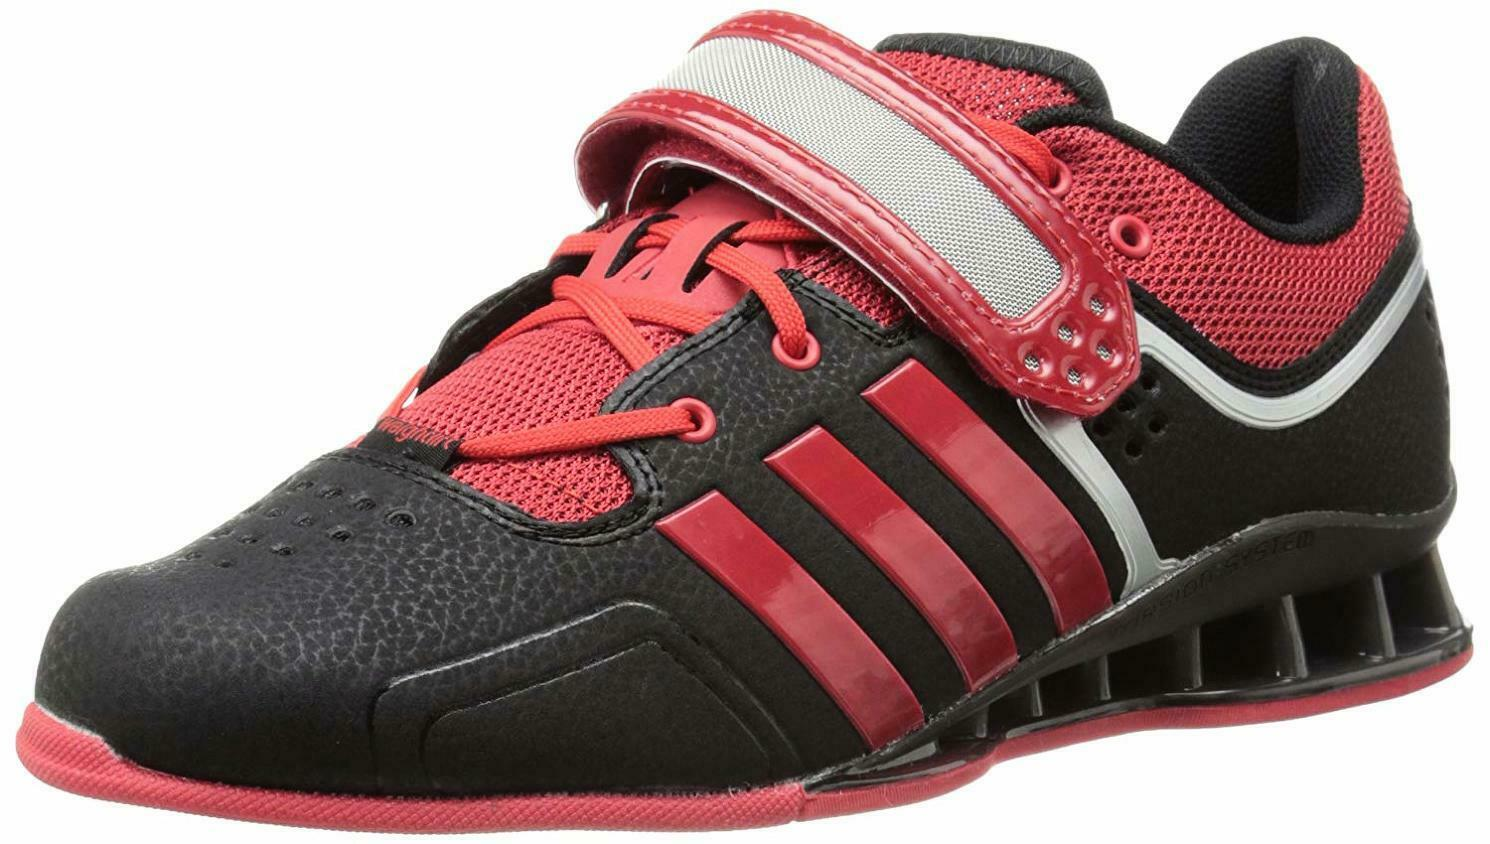 Adidas Men's Adipower Weightlift shoes - Choose SZ color